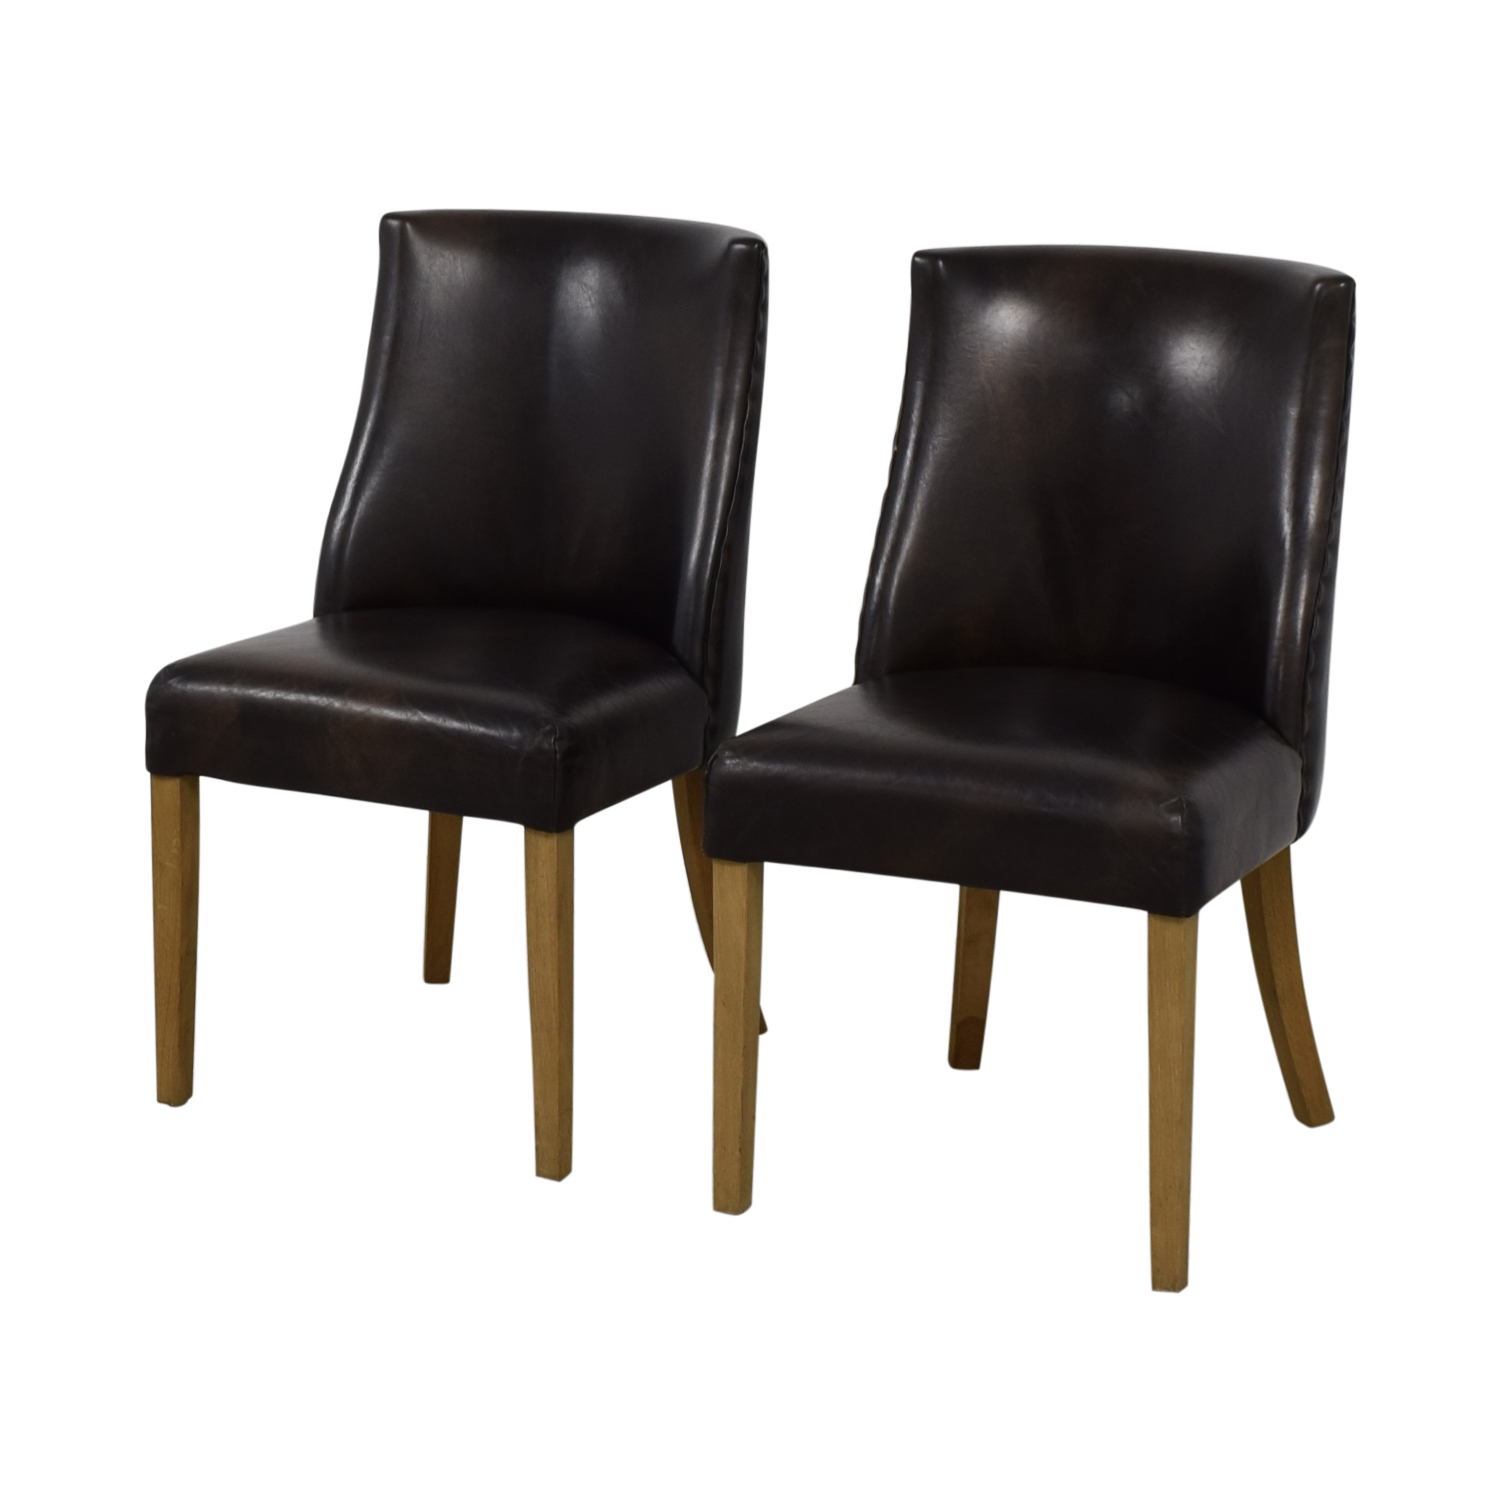 Restoration Hardware Leather Chairs 89 Off Restoration Hardware Restoration Hardware Brown